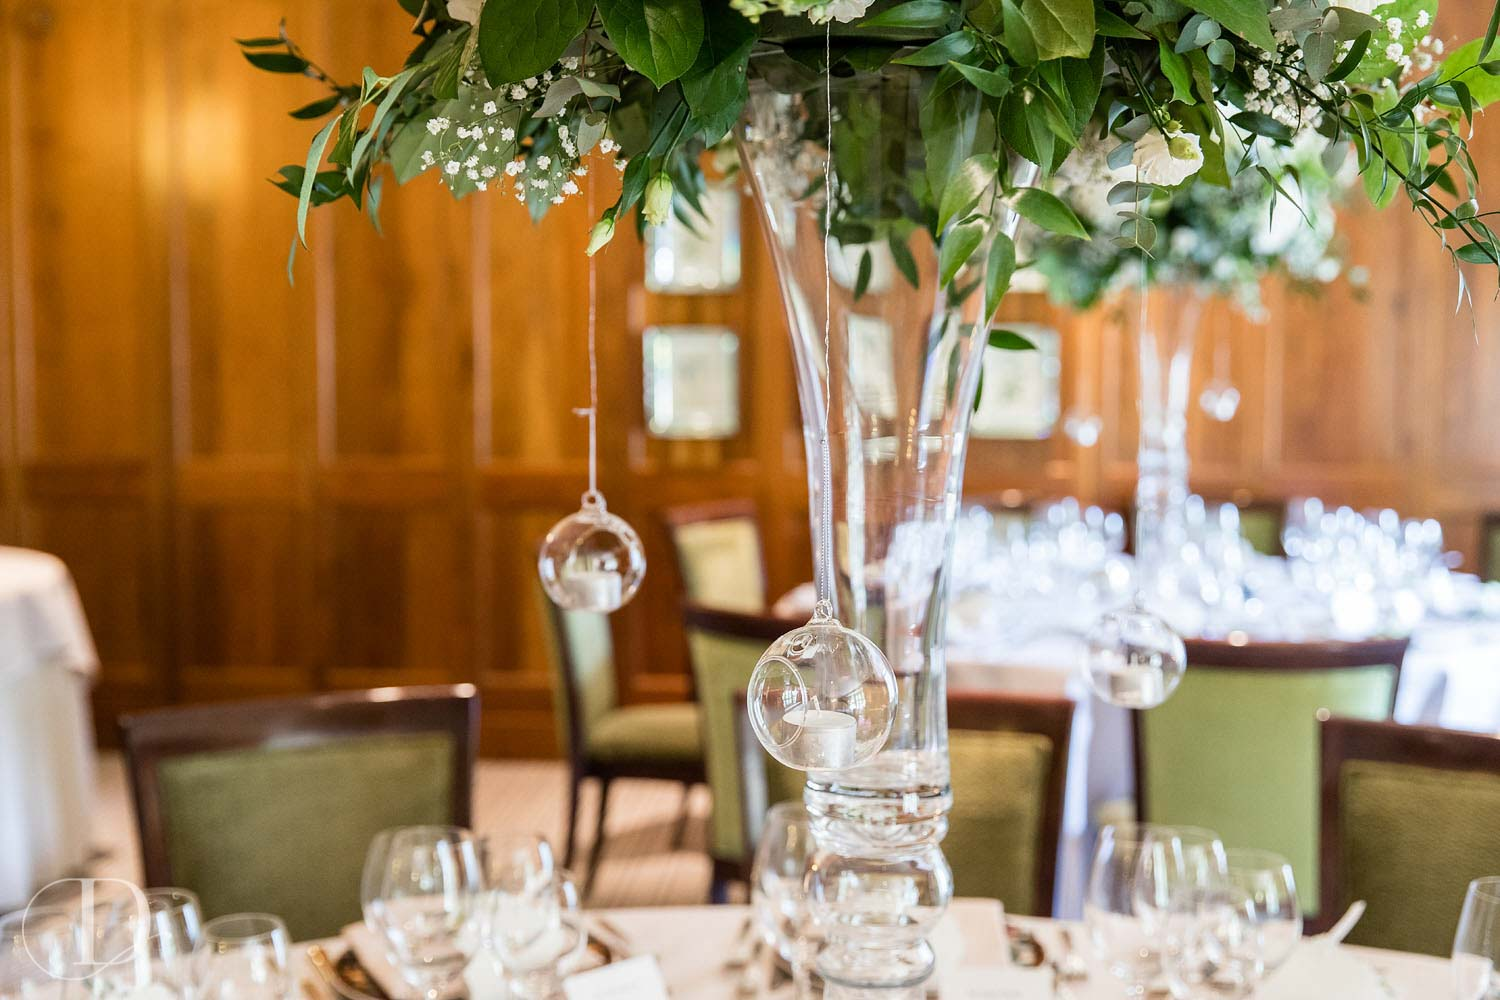 Le Manoir aux Quat'Saisons wedding table